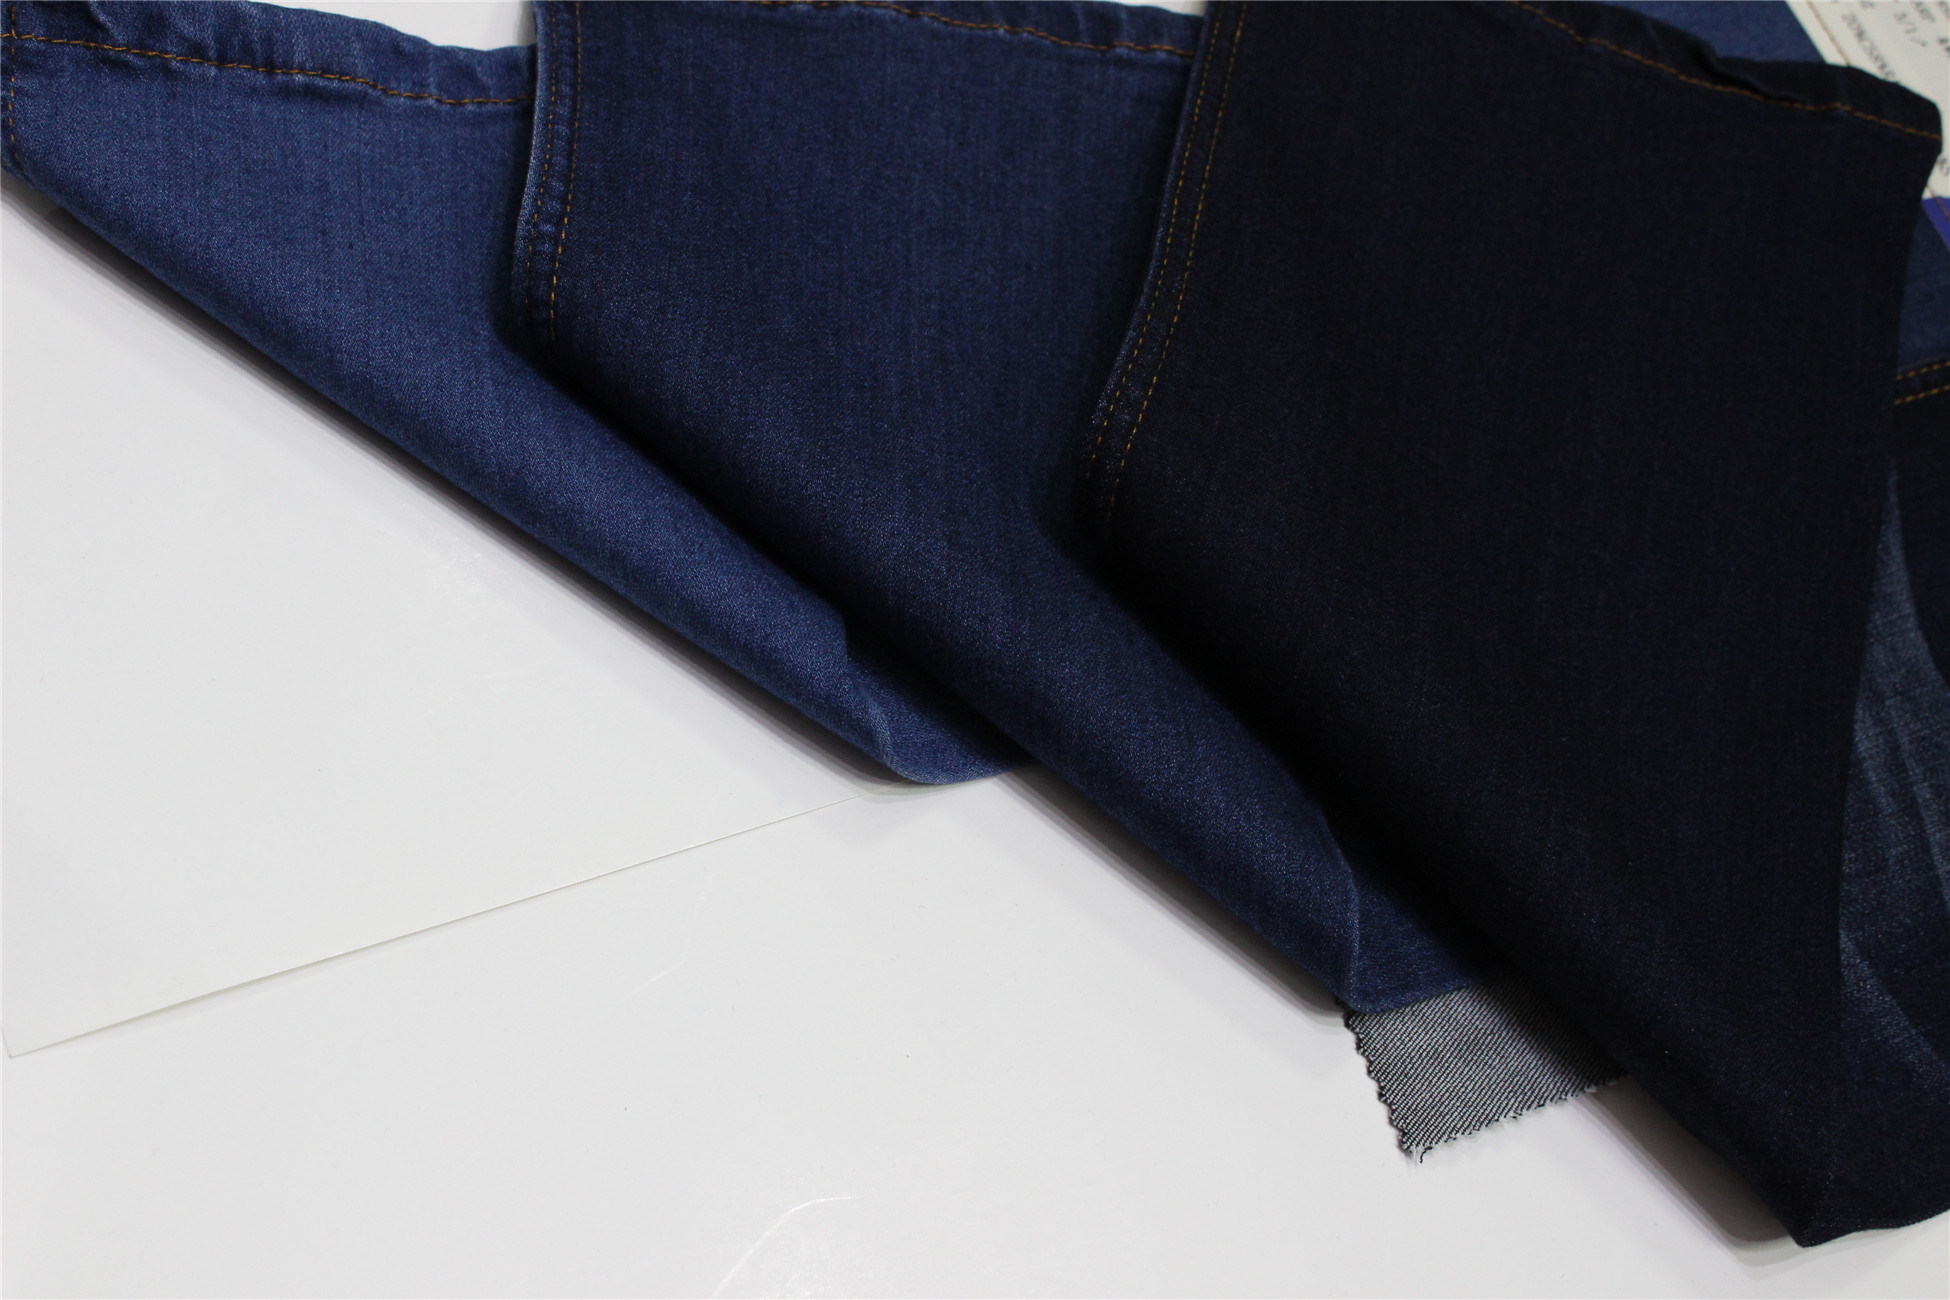 Rayon Cotton Polyester Spandex Denim